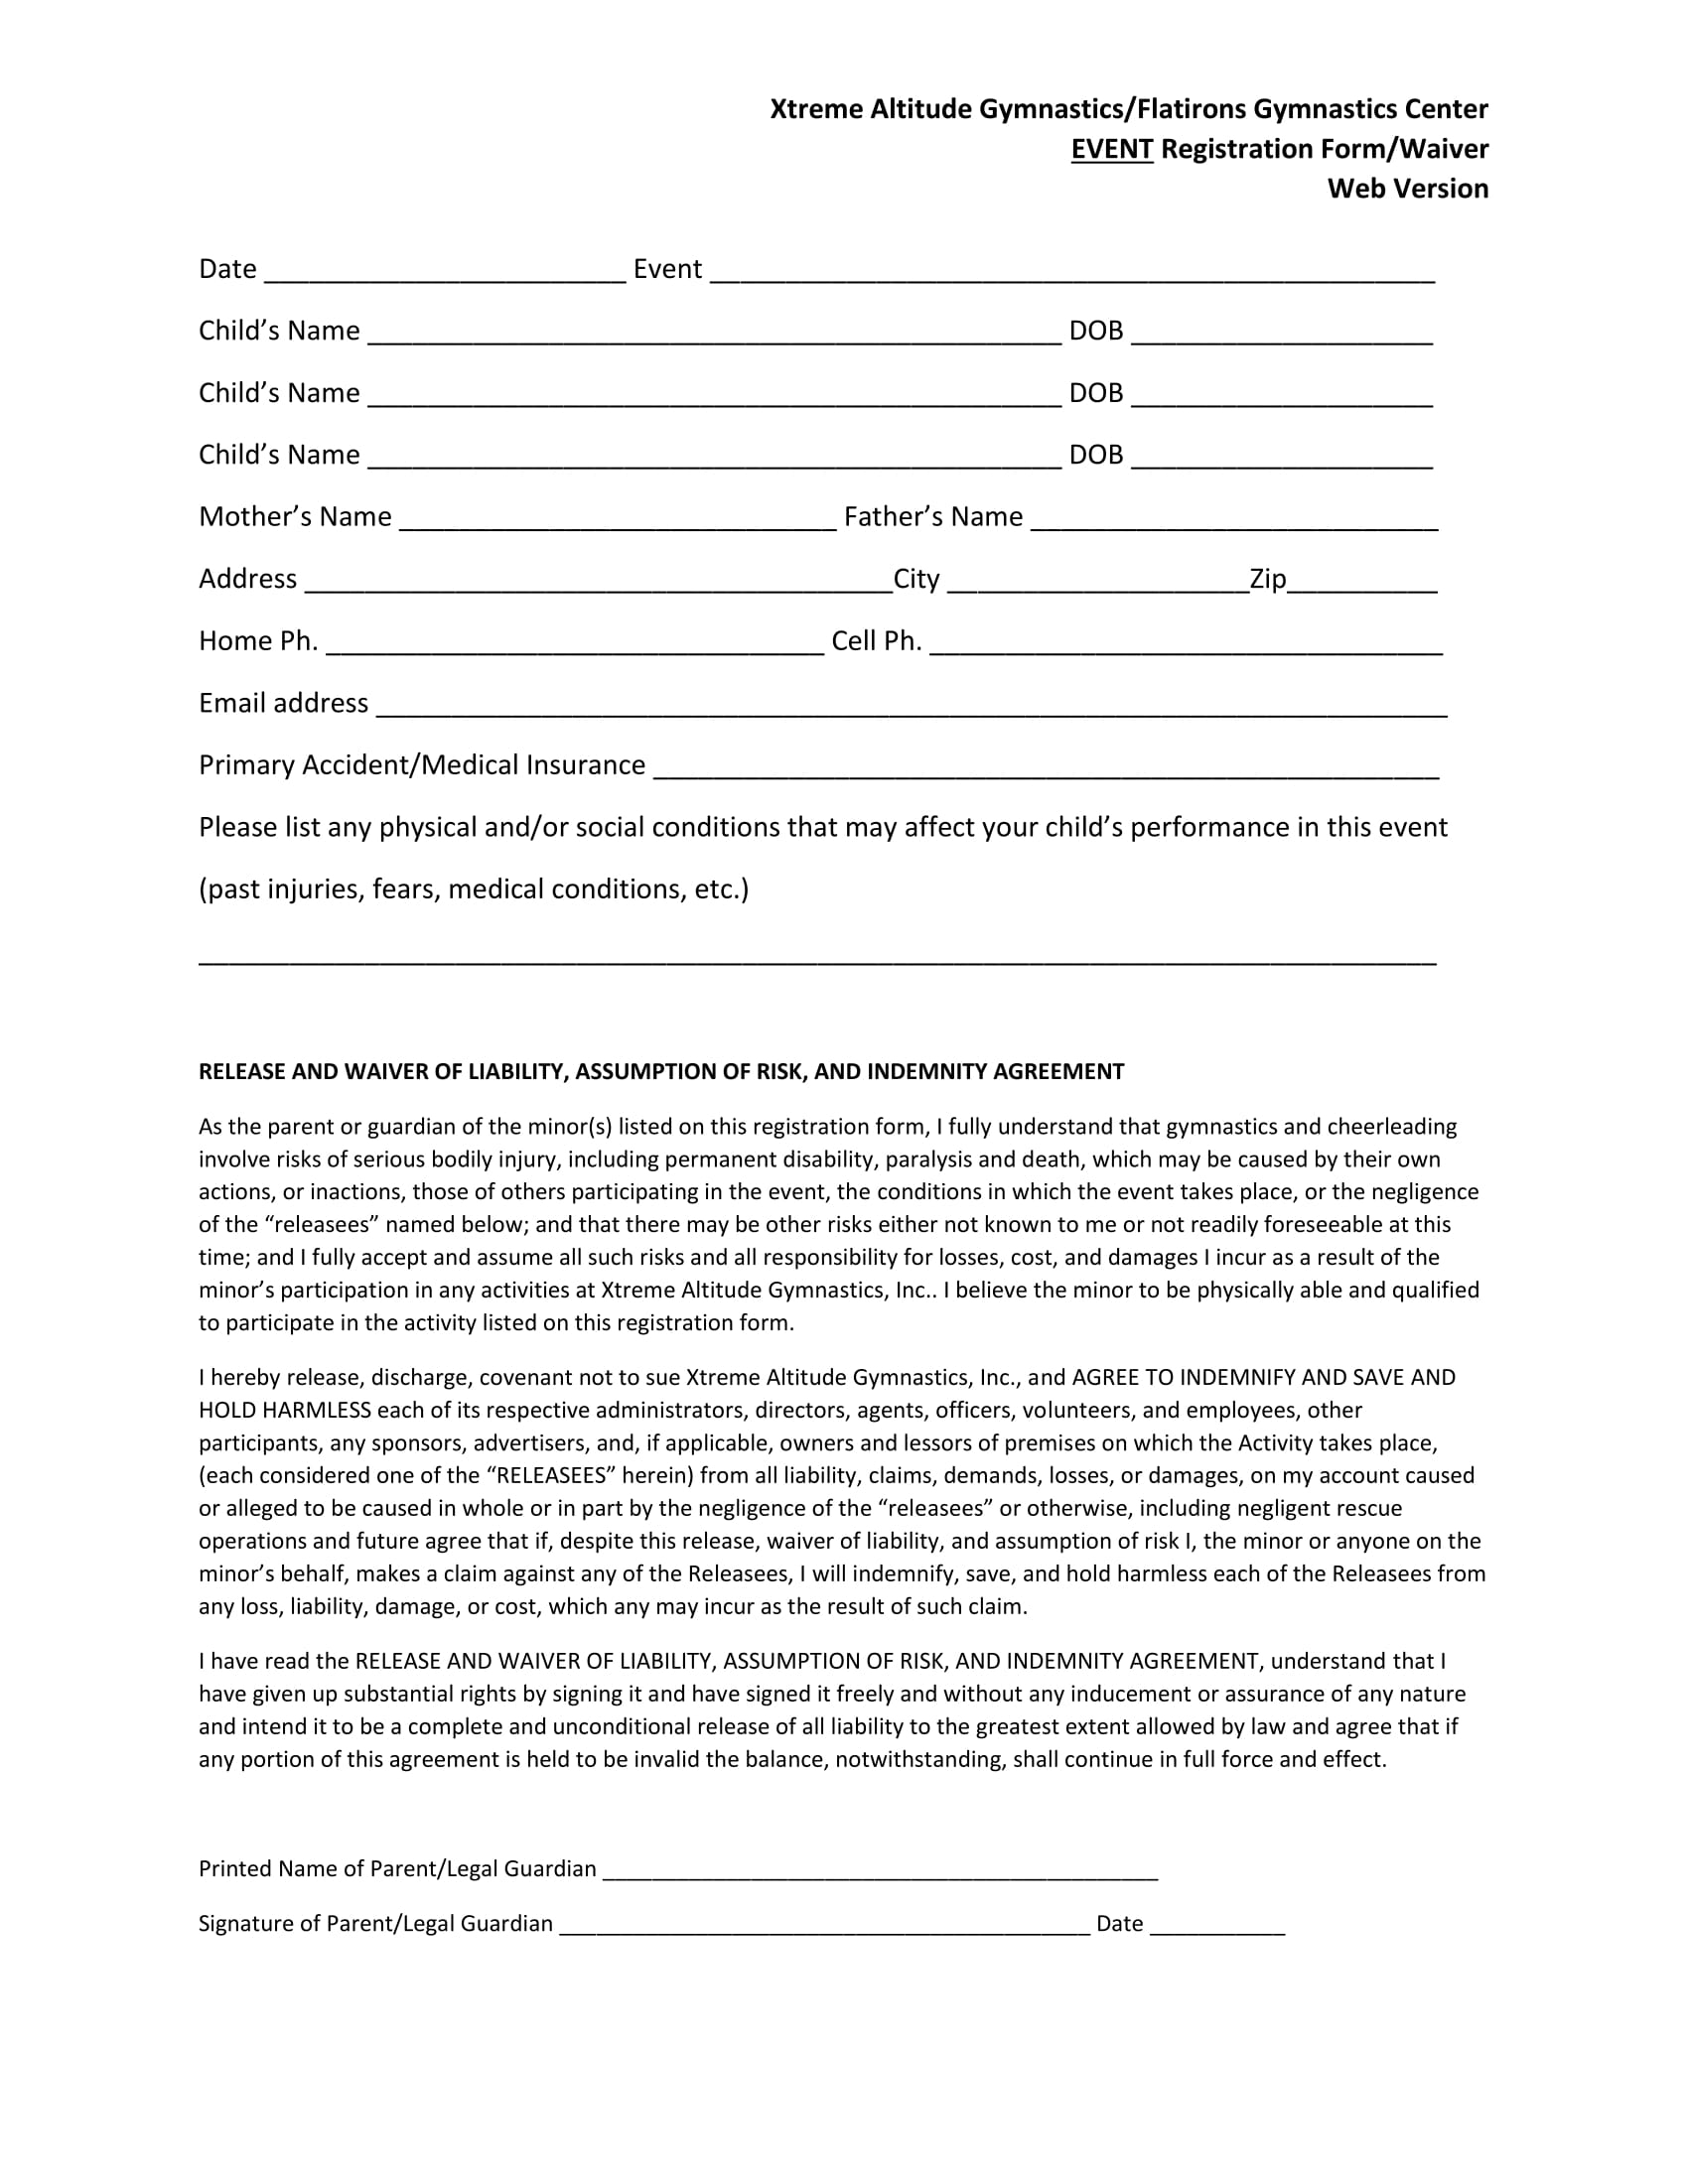 gymnastics event registration form 1